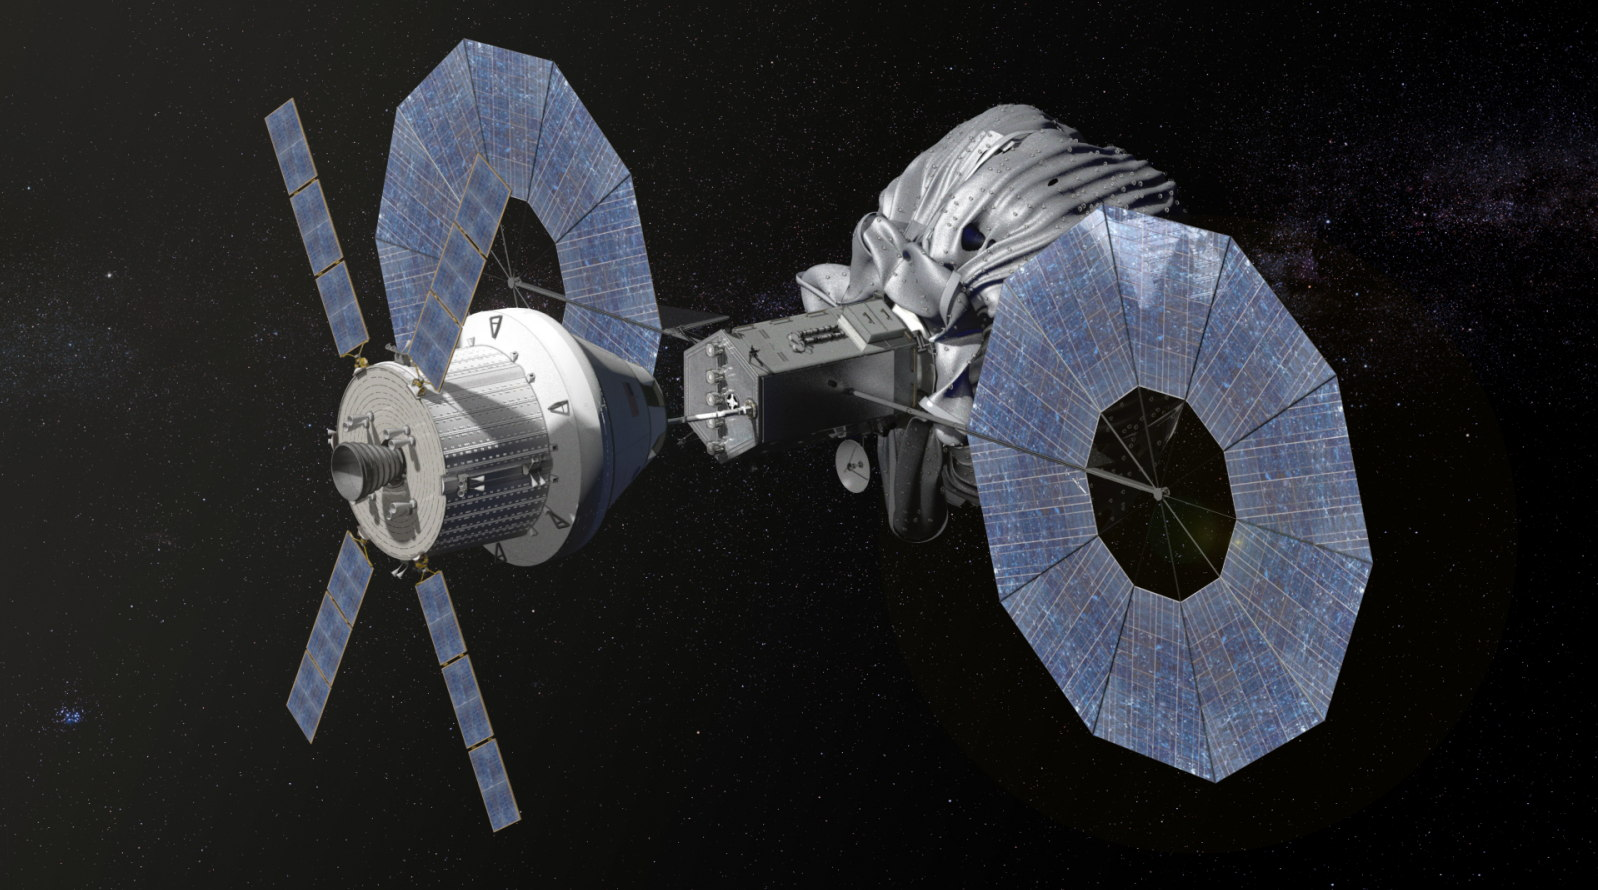 Robotic Asteroid Redirect Vehicle with Orion